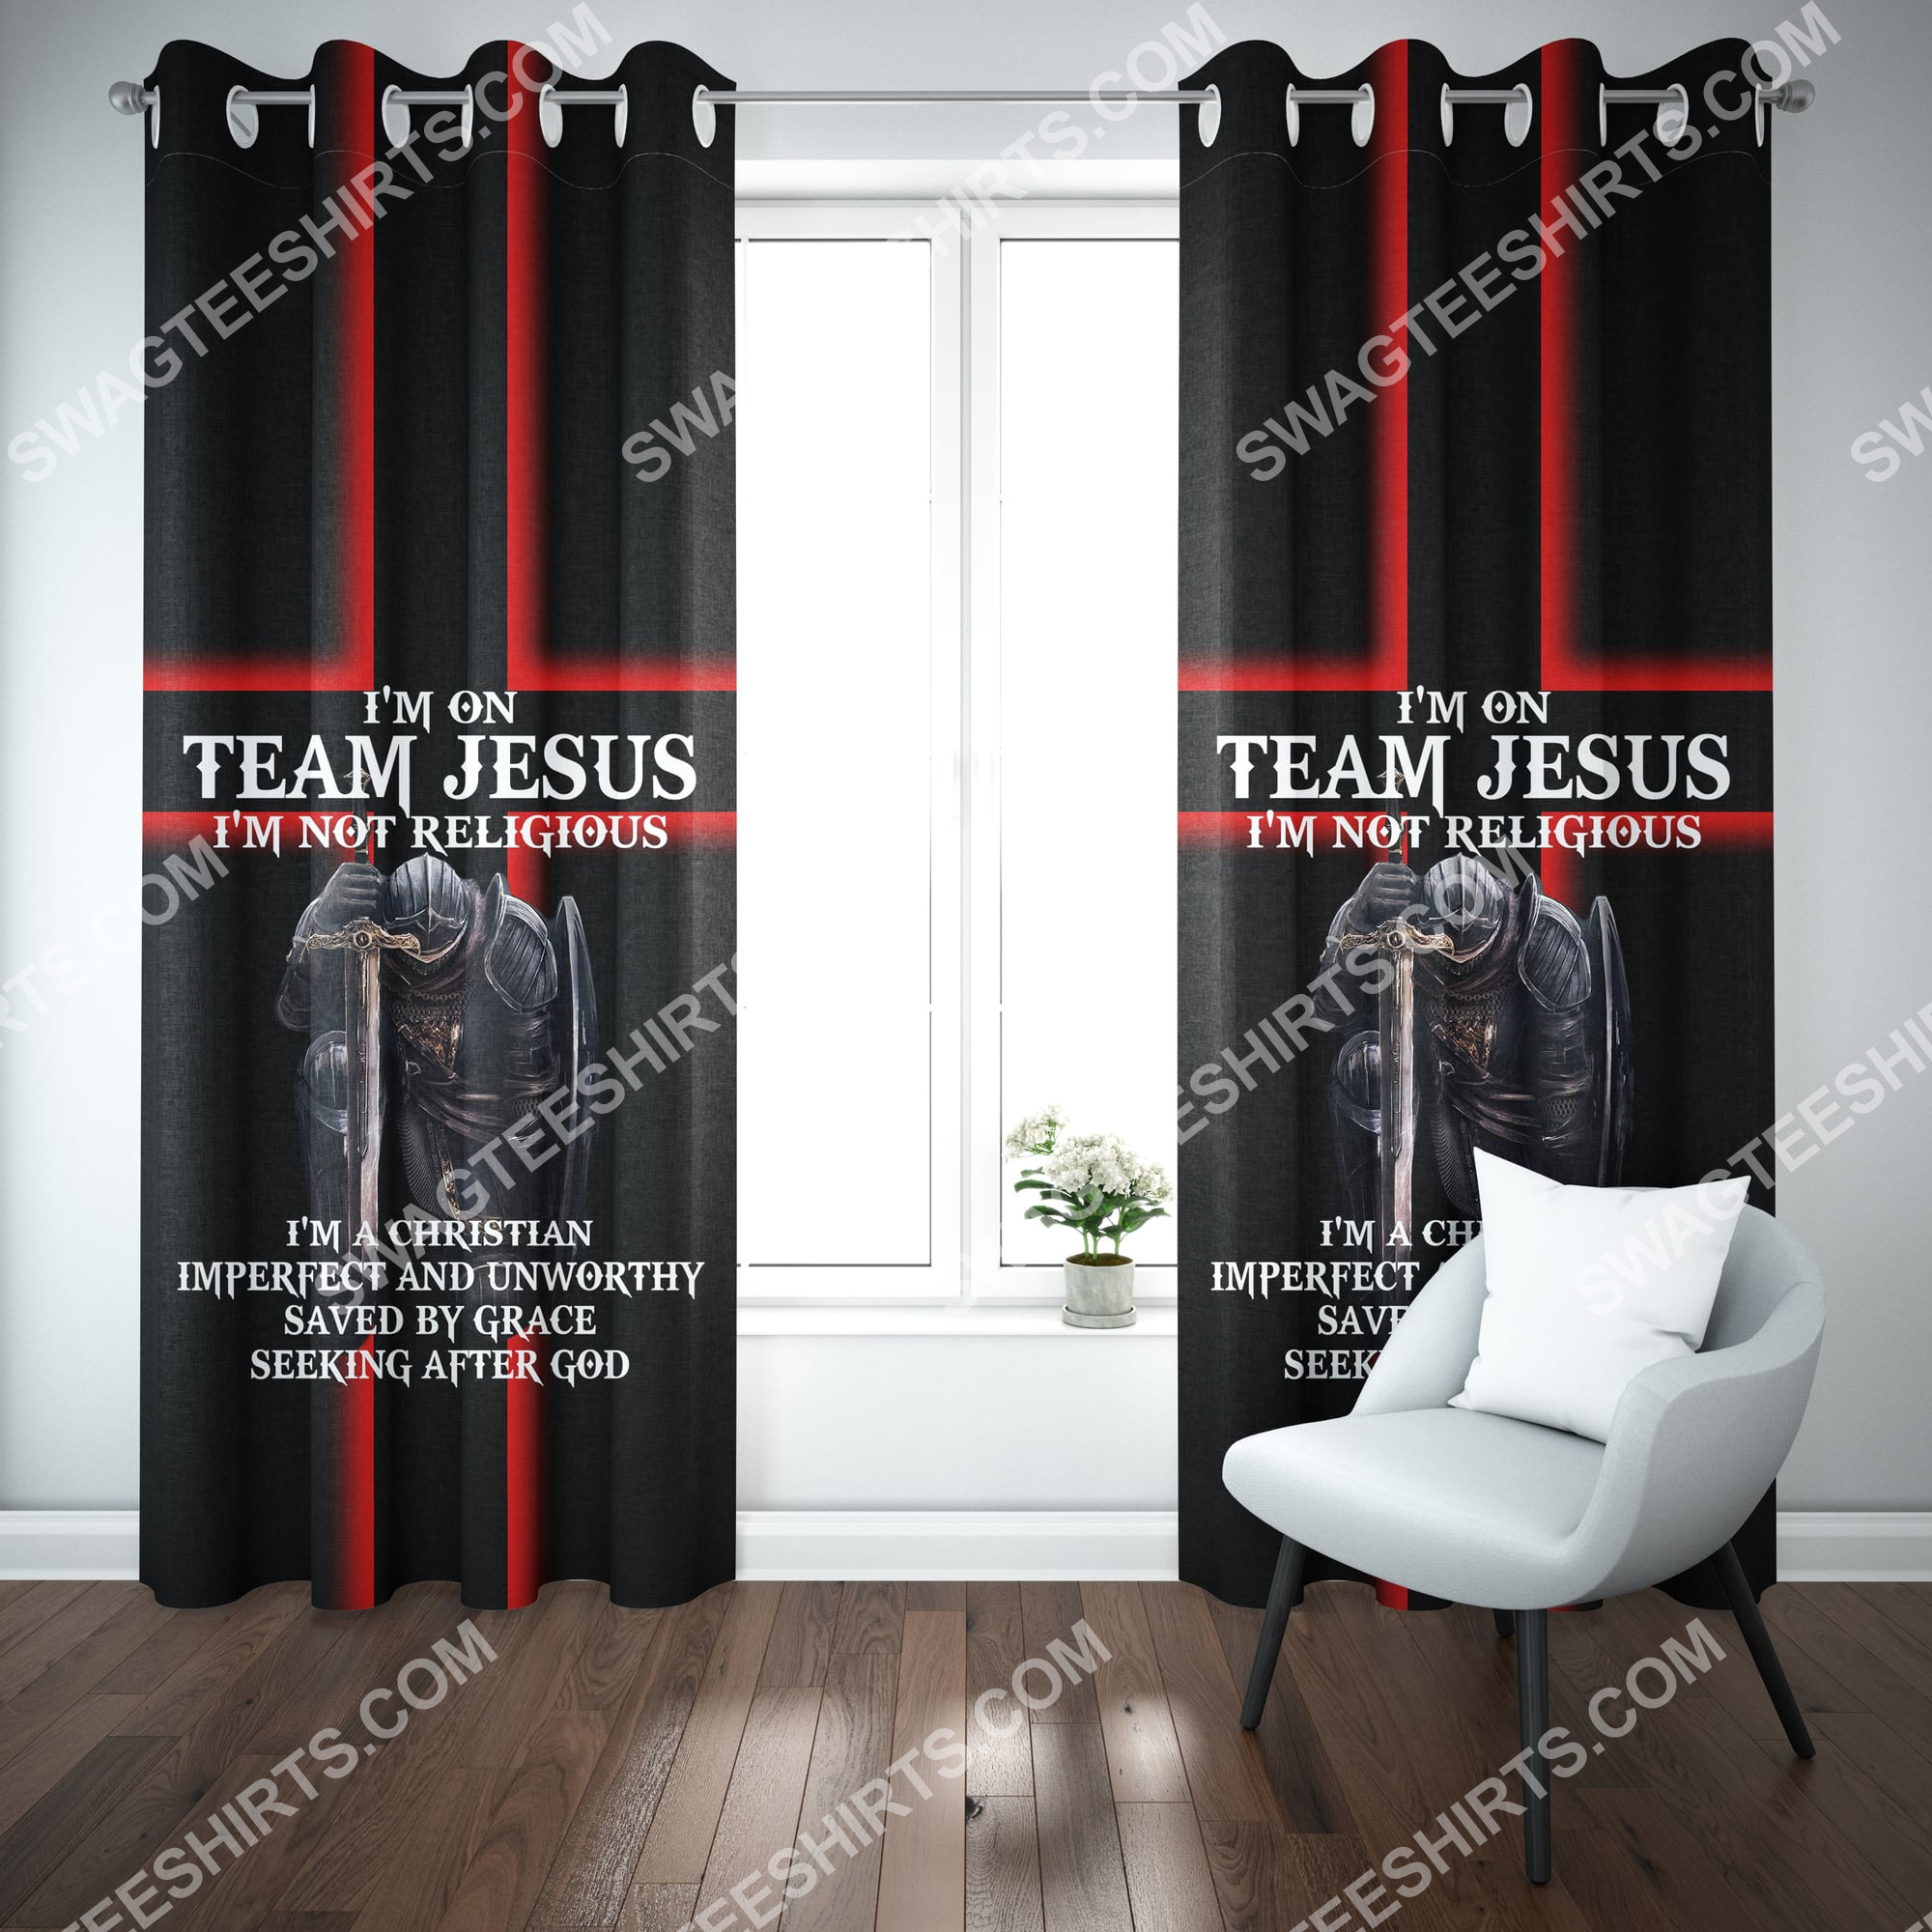 i'm on team Jesus i'm not religious all over printed window curtains 2(1) - Copy